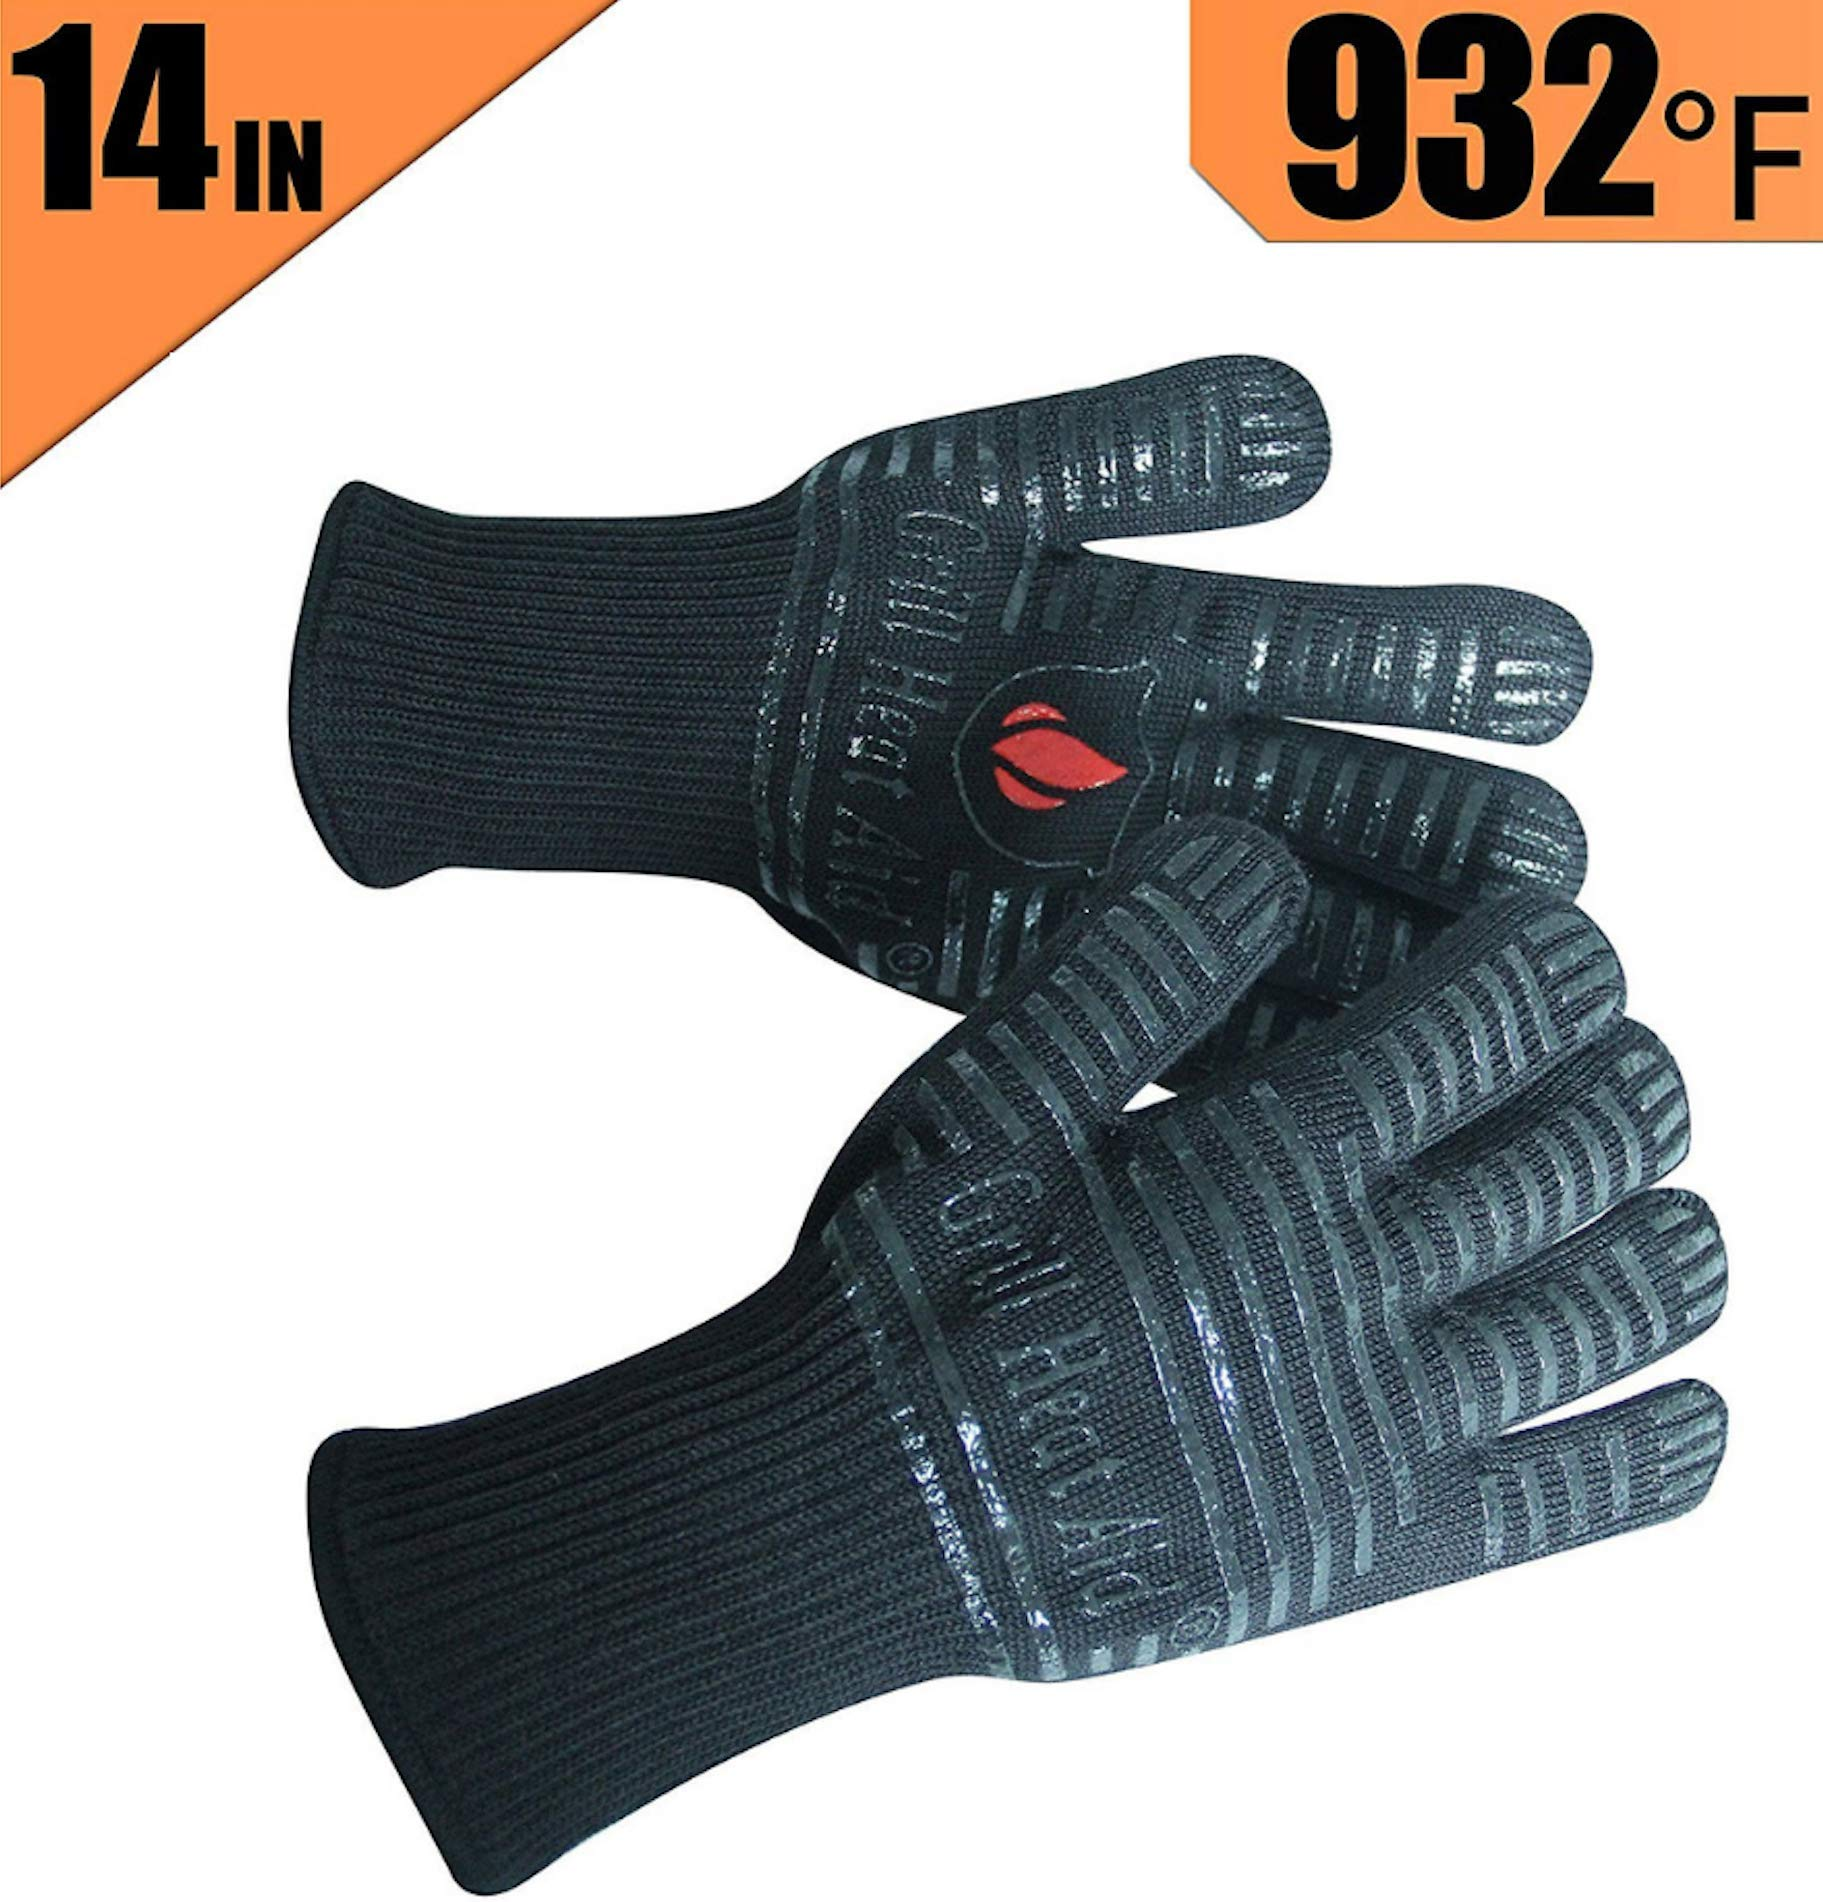 BBQ Gloves Extreme Heat Resistant for Baking, Smoking, Cooking, Grilling, Barbecue, Fireplace, Camping - More Flexibility for Kitchen or Outdoor Than Oven Mitts, Protect Up To 932°F, 14 inch Long Cuff by Grill Heat Aid